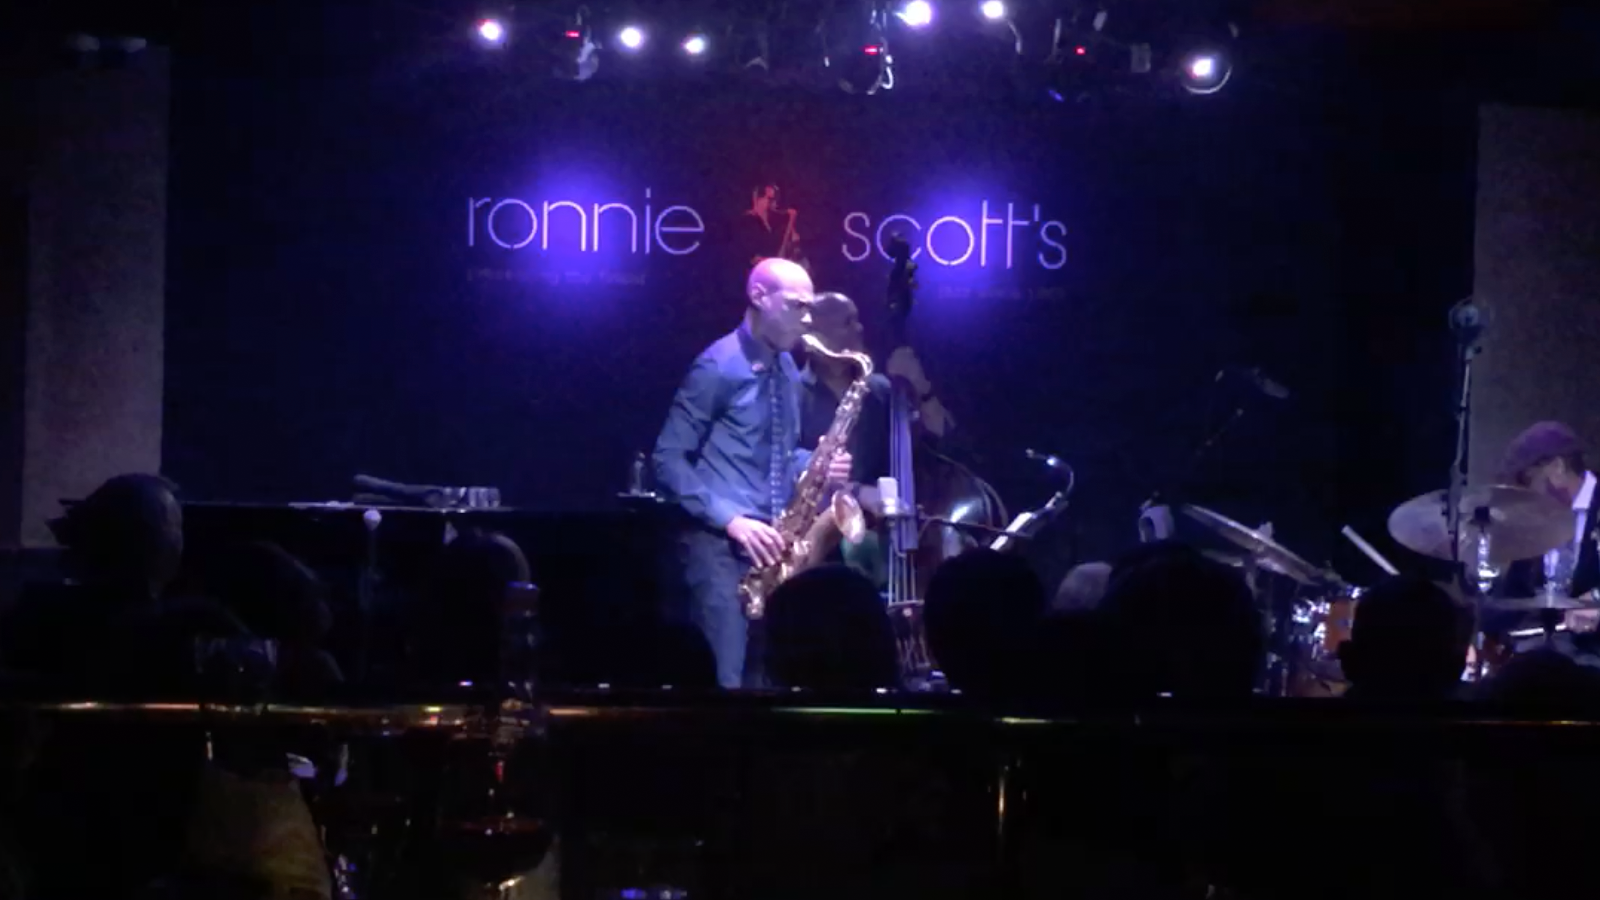 Joshua Redman plays our tenor at Ronnie Scott's, London